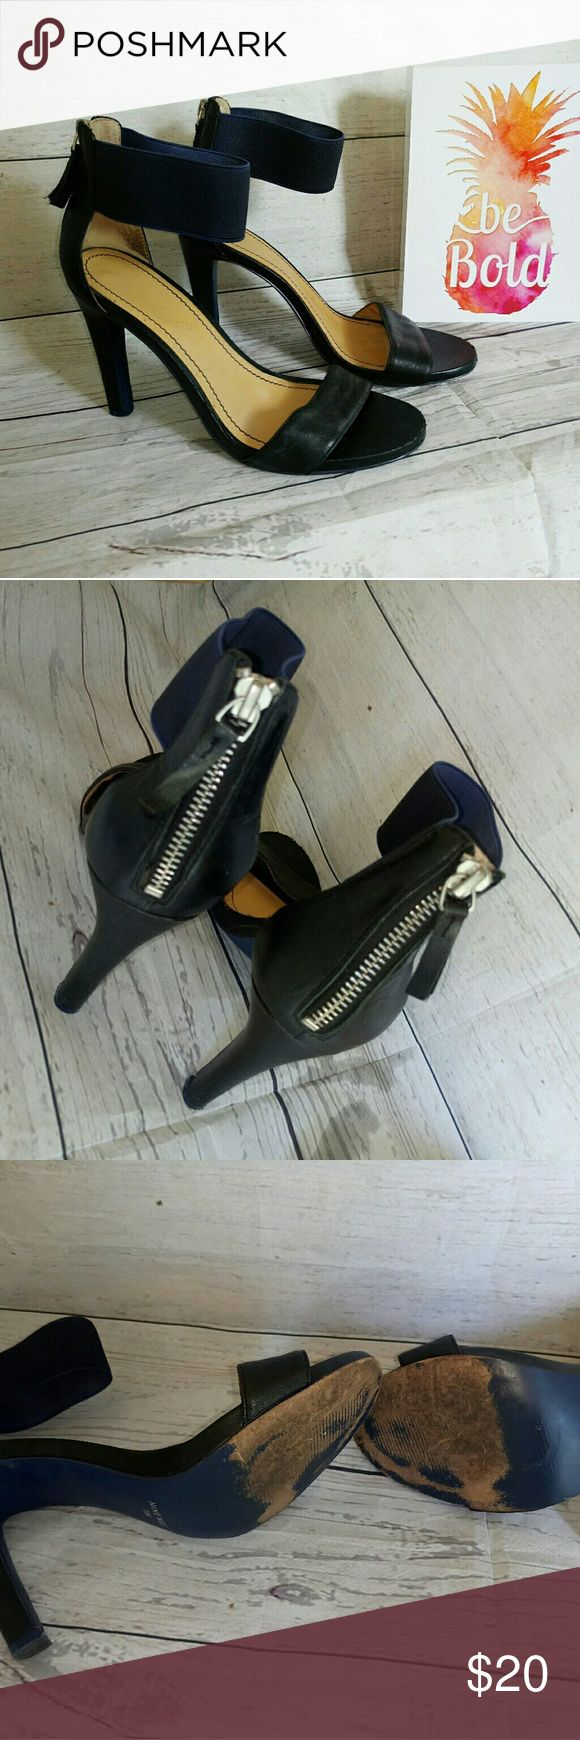 Womens Nine West Shoes Heels Size 7.5 This listing is for a pair of Womens Nine West Heels Size 7.5 Shoes are used, signs of wear on bottom of shoes but still in great condition Nine West Shoes Heels